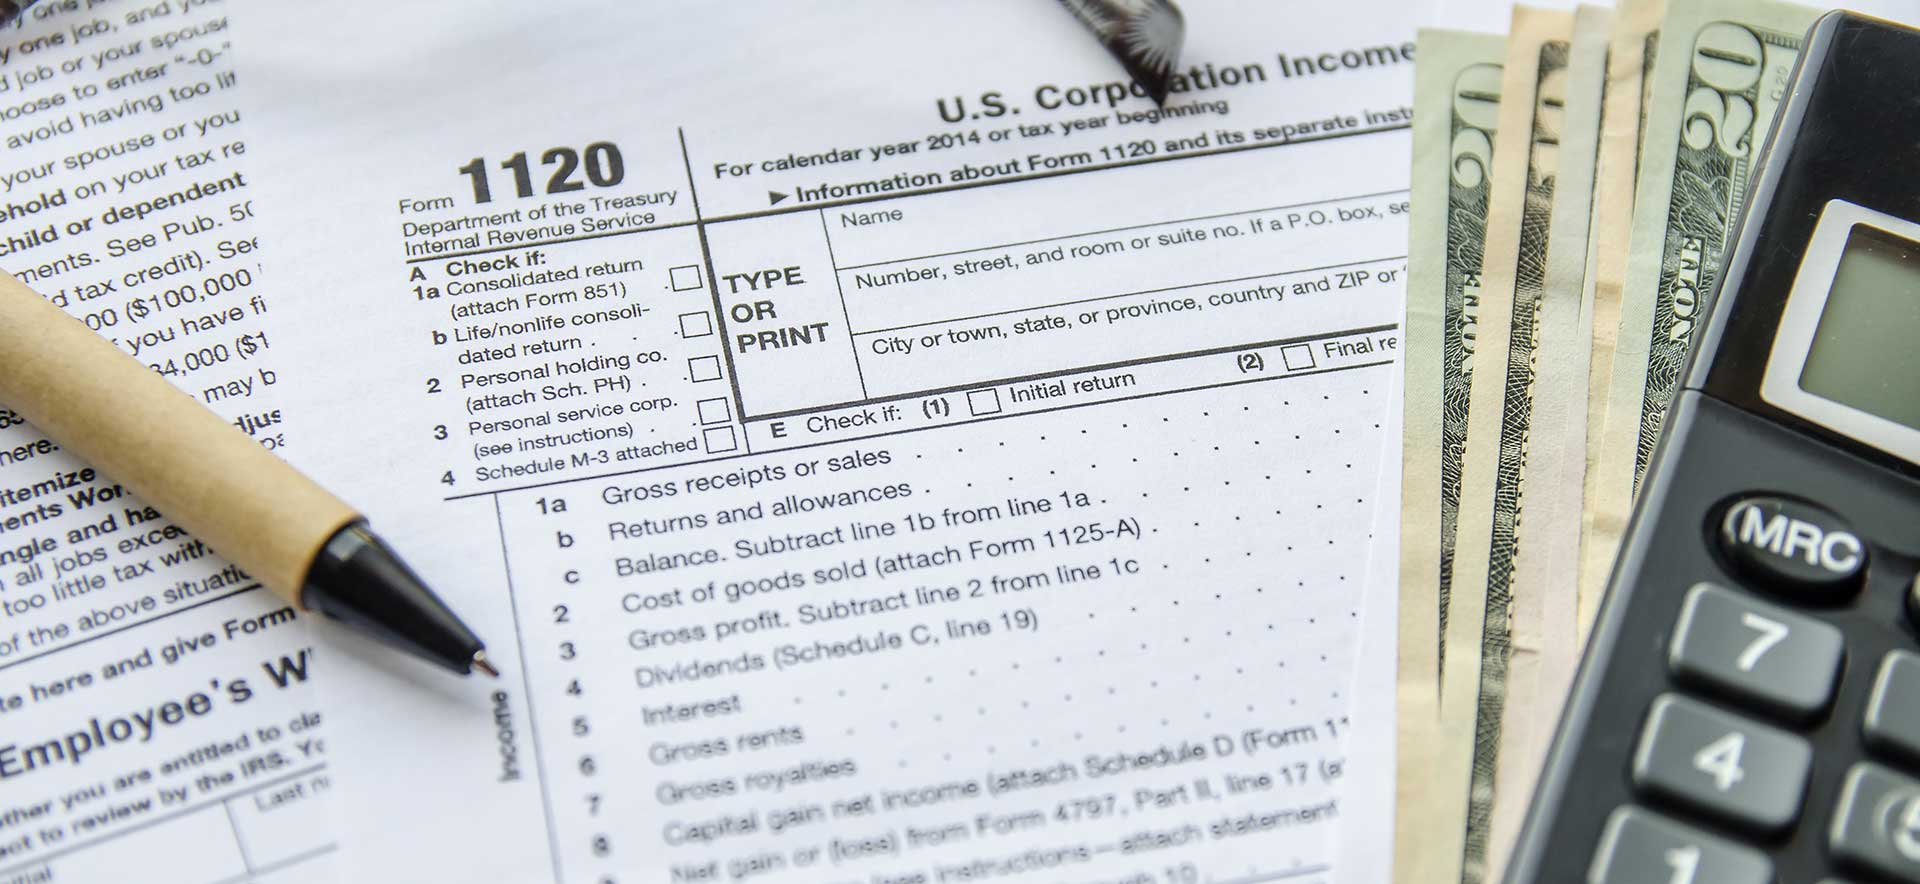 Detail of 1120 Form for U.S. Corporate Income taxes